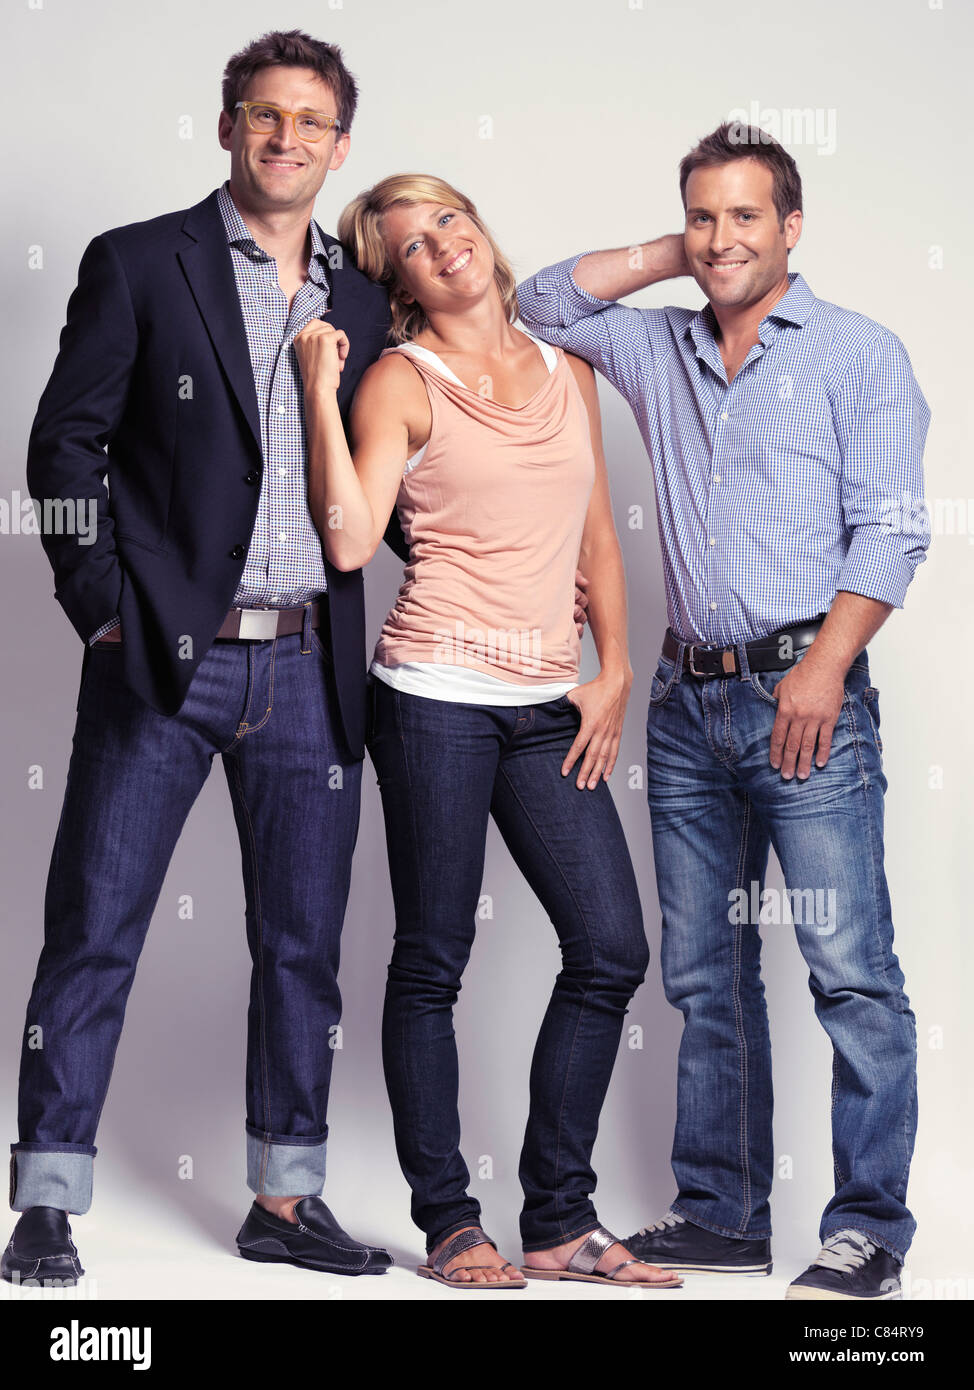 Smiling casually but with style dressed two men and a woman wearing jeans Stock Photo